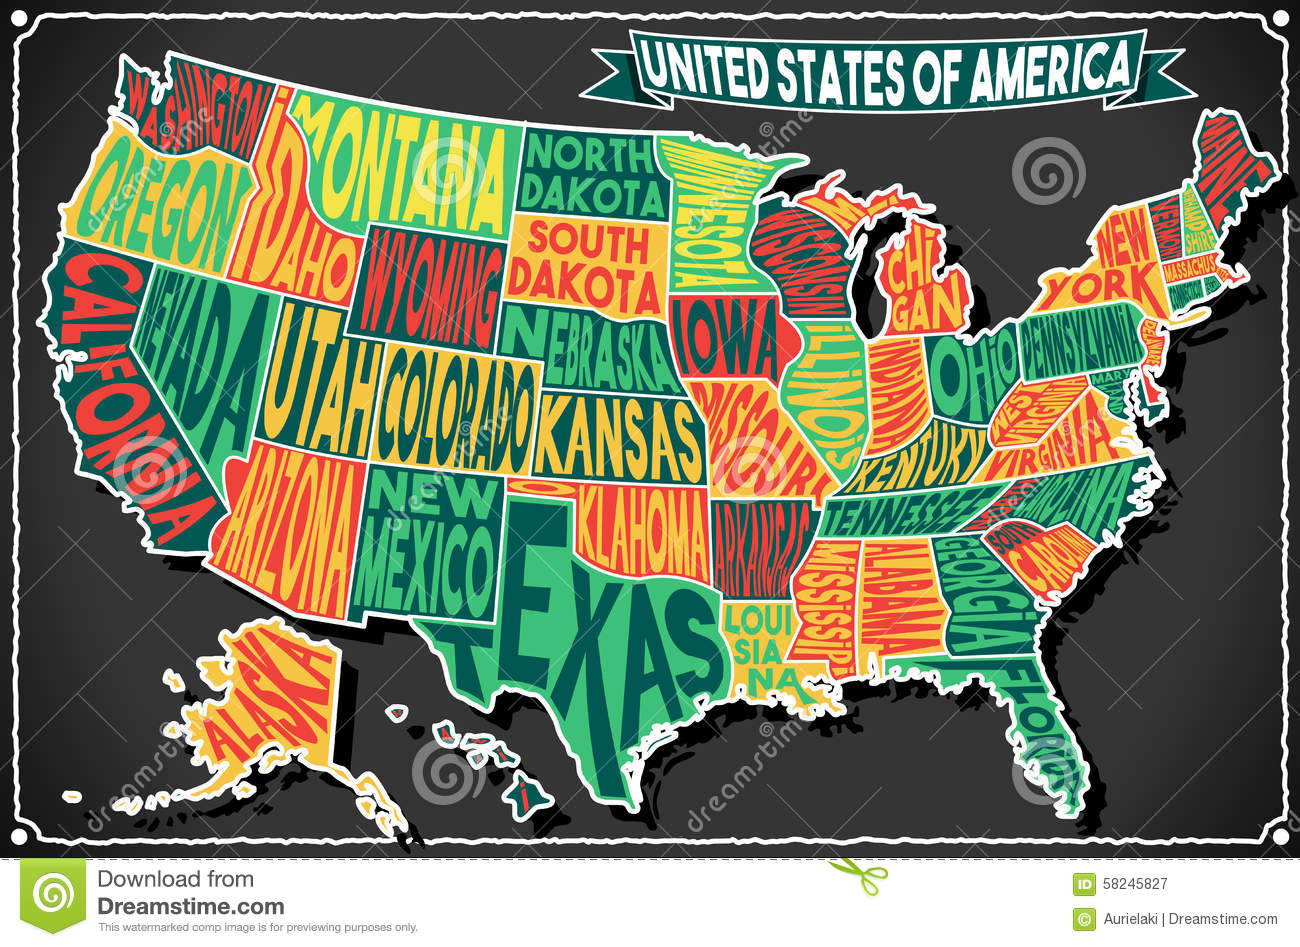 Royalty Free Vector Download Usa Map